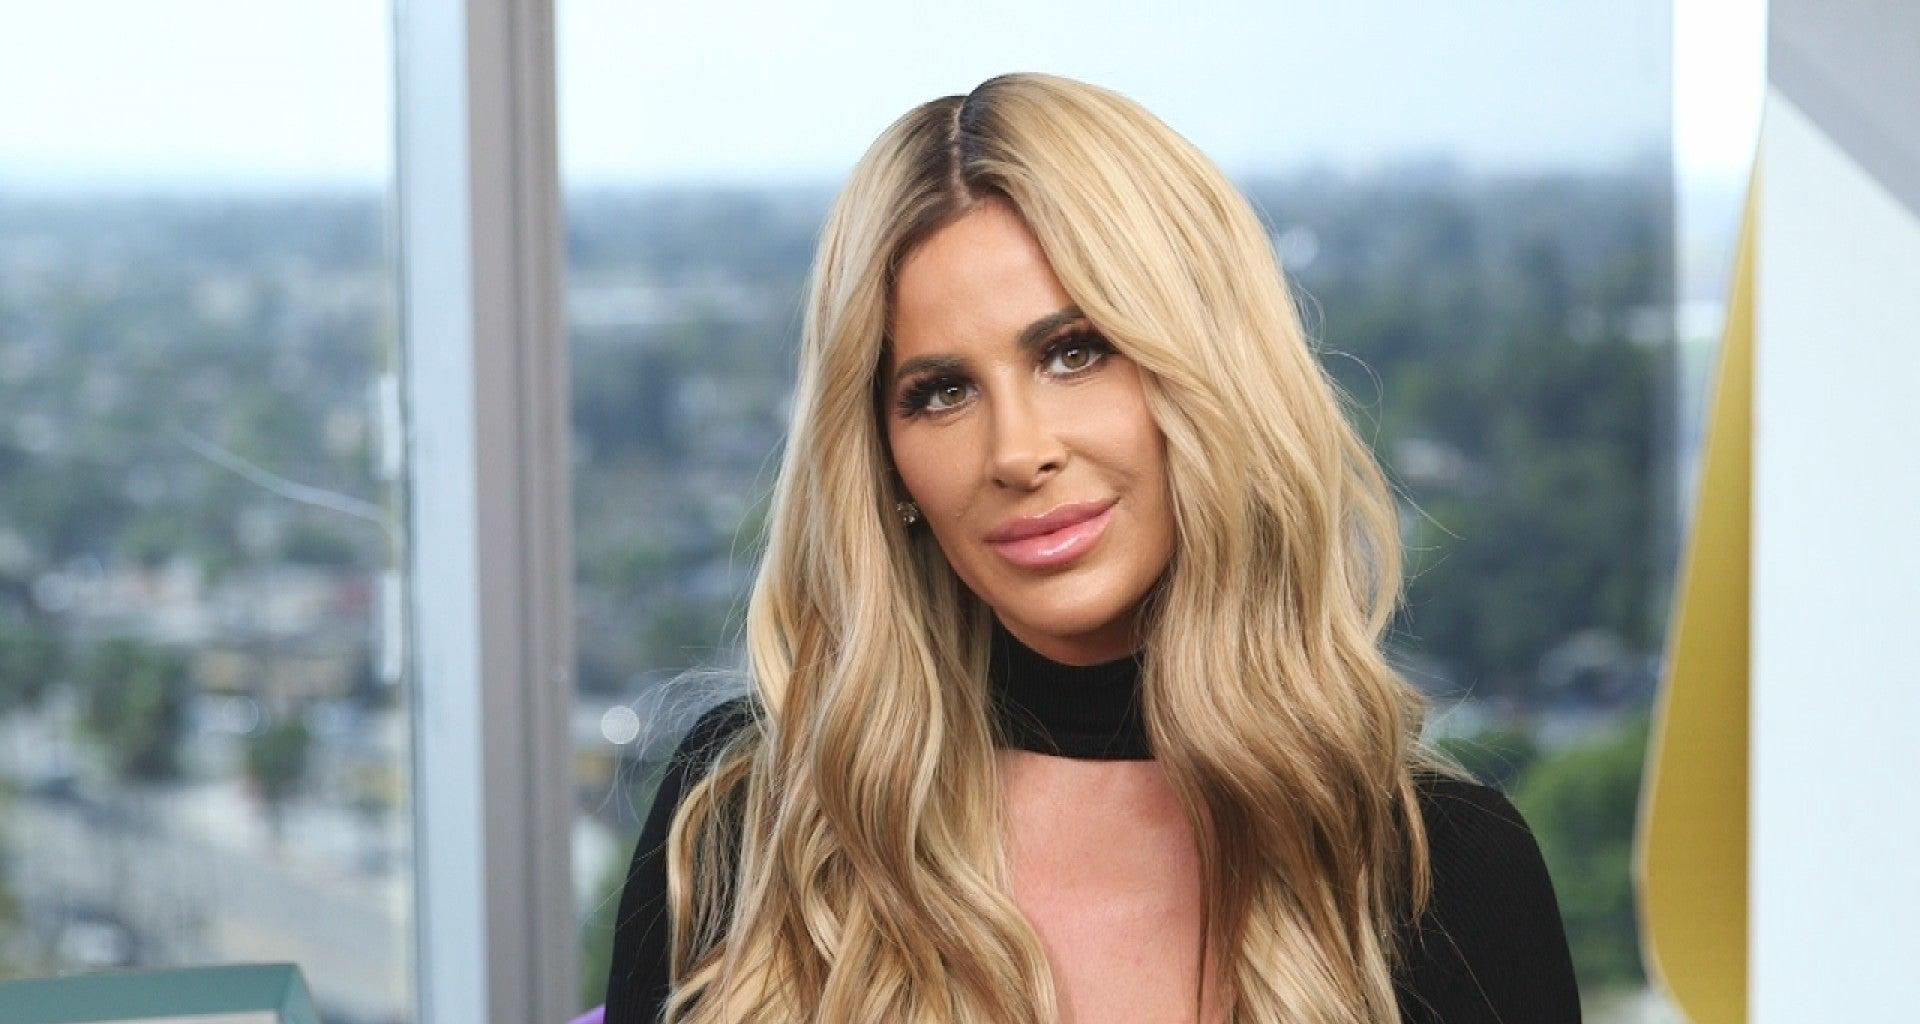 Kim Zolciak Drags Haters Speculating She Altered Her Face During Quarantine - Check Out Her Video!